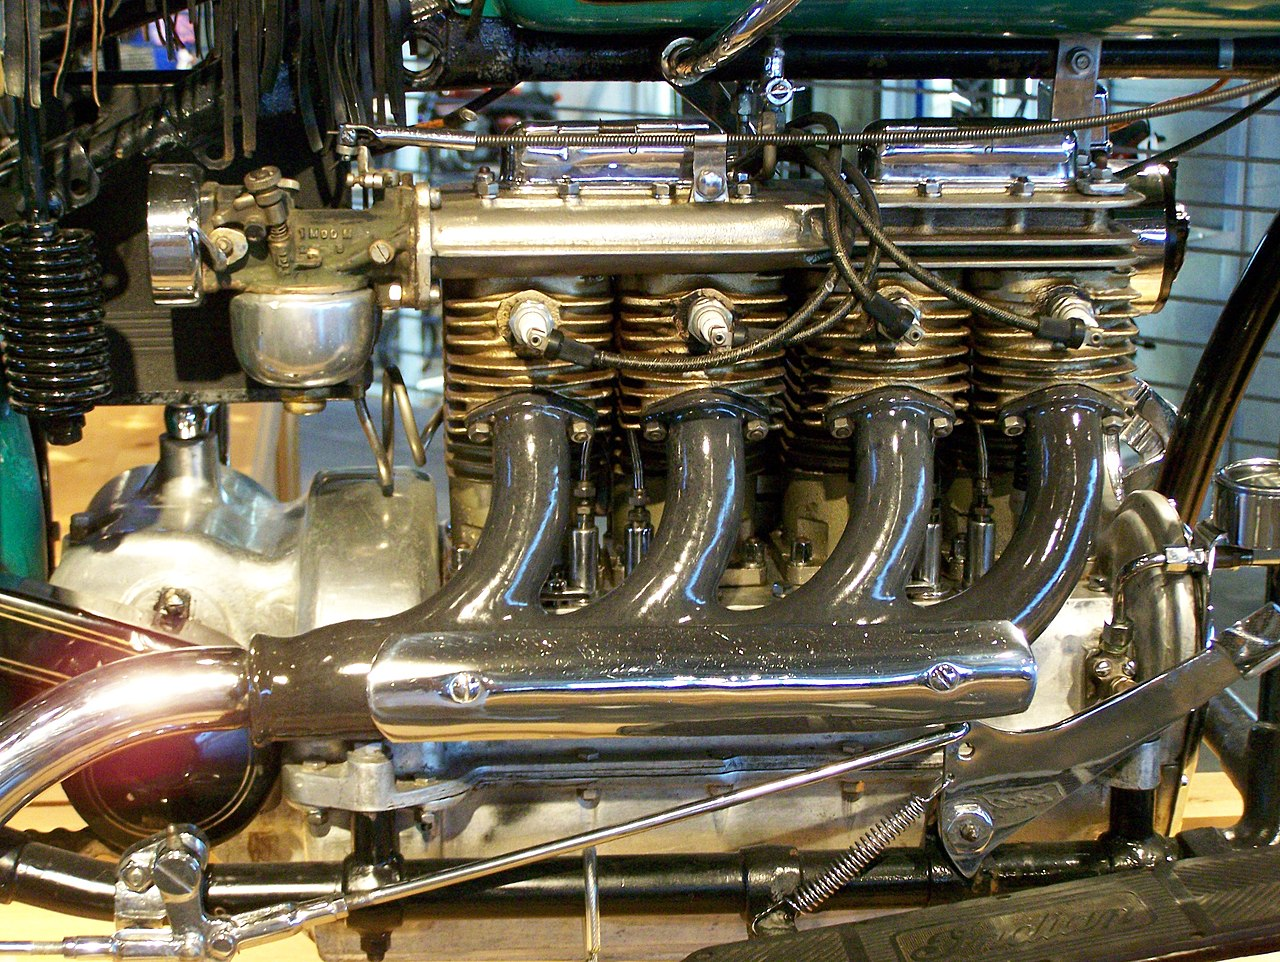 File:Indian 4 engine at Barber Vintage Motorsports Museum.jpg ...